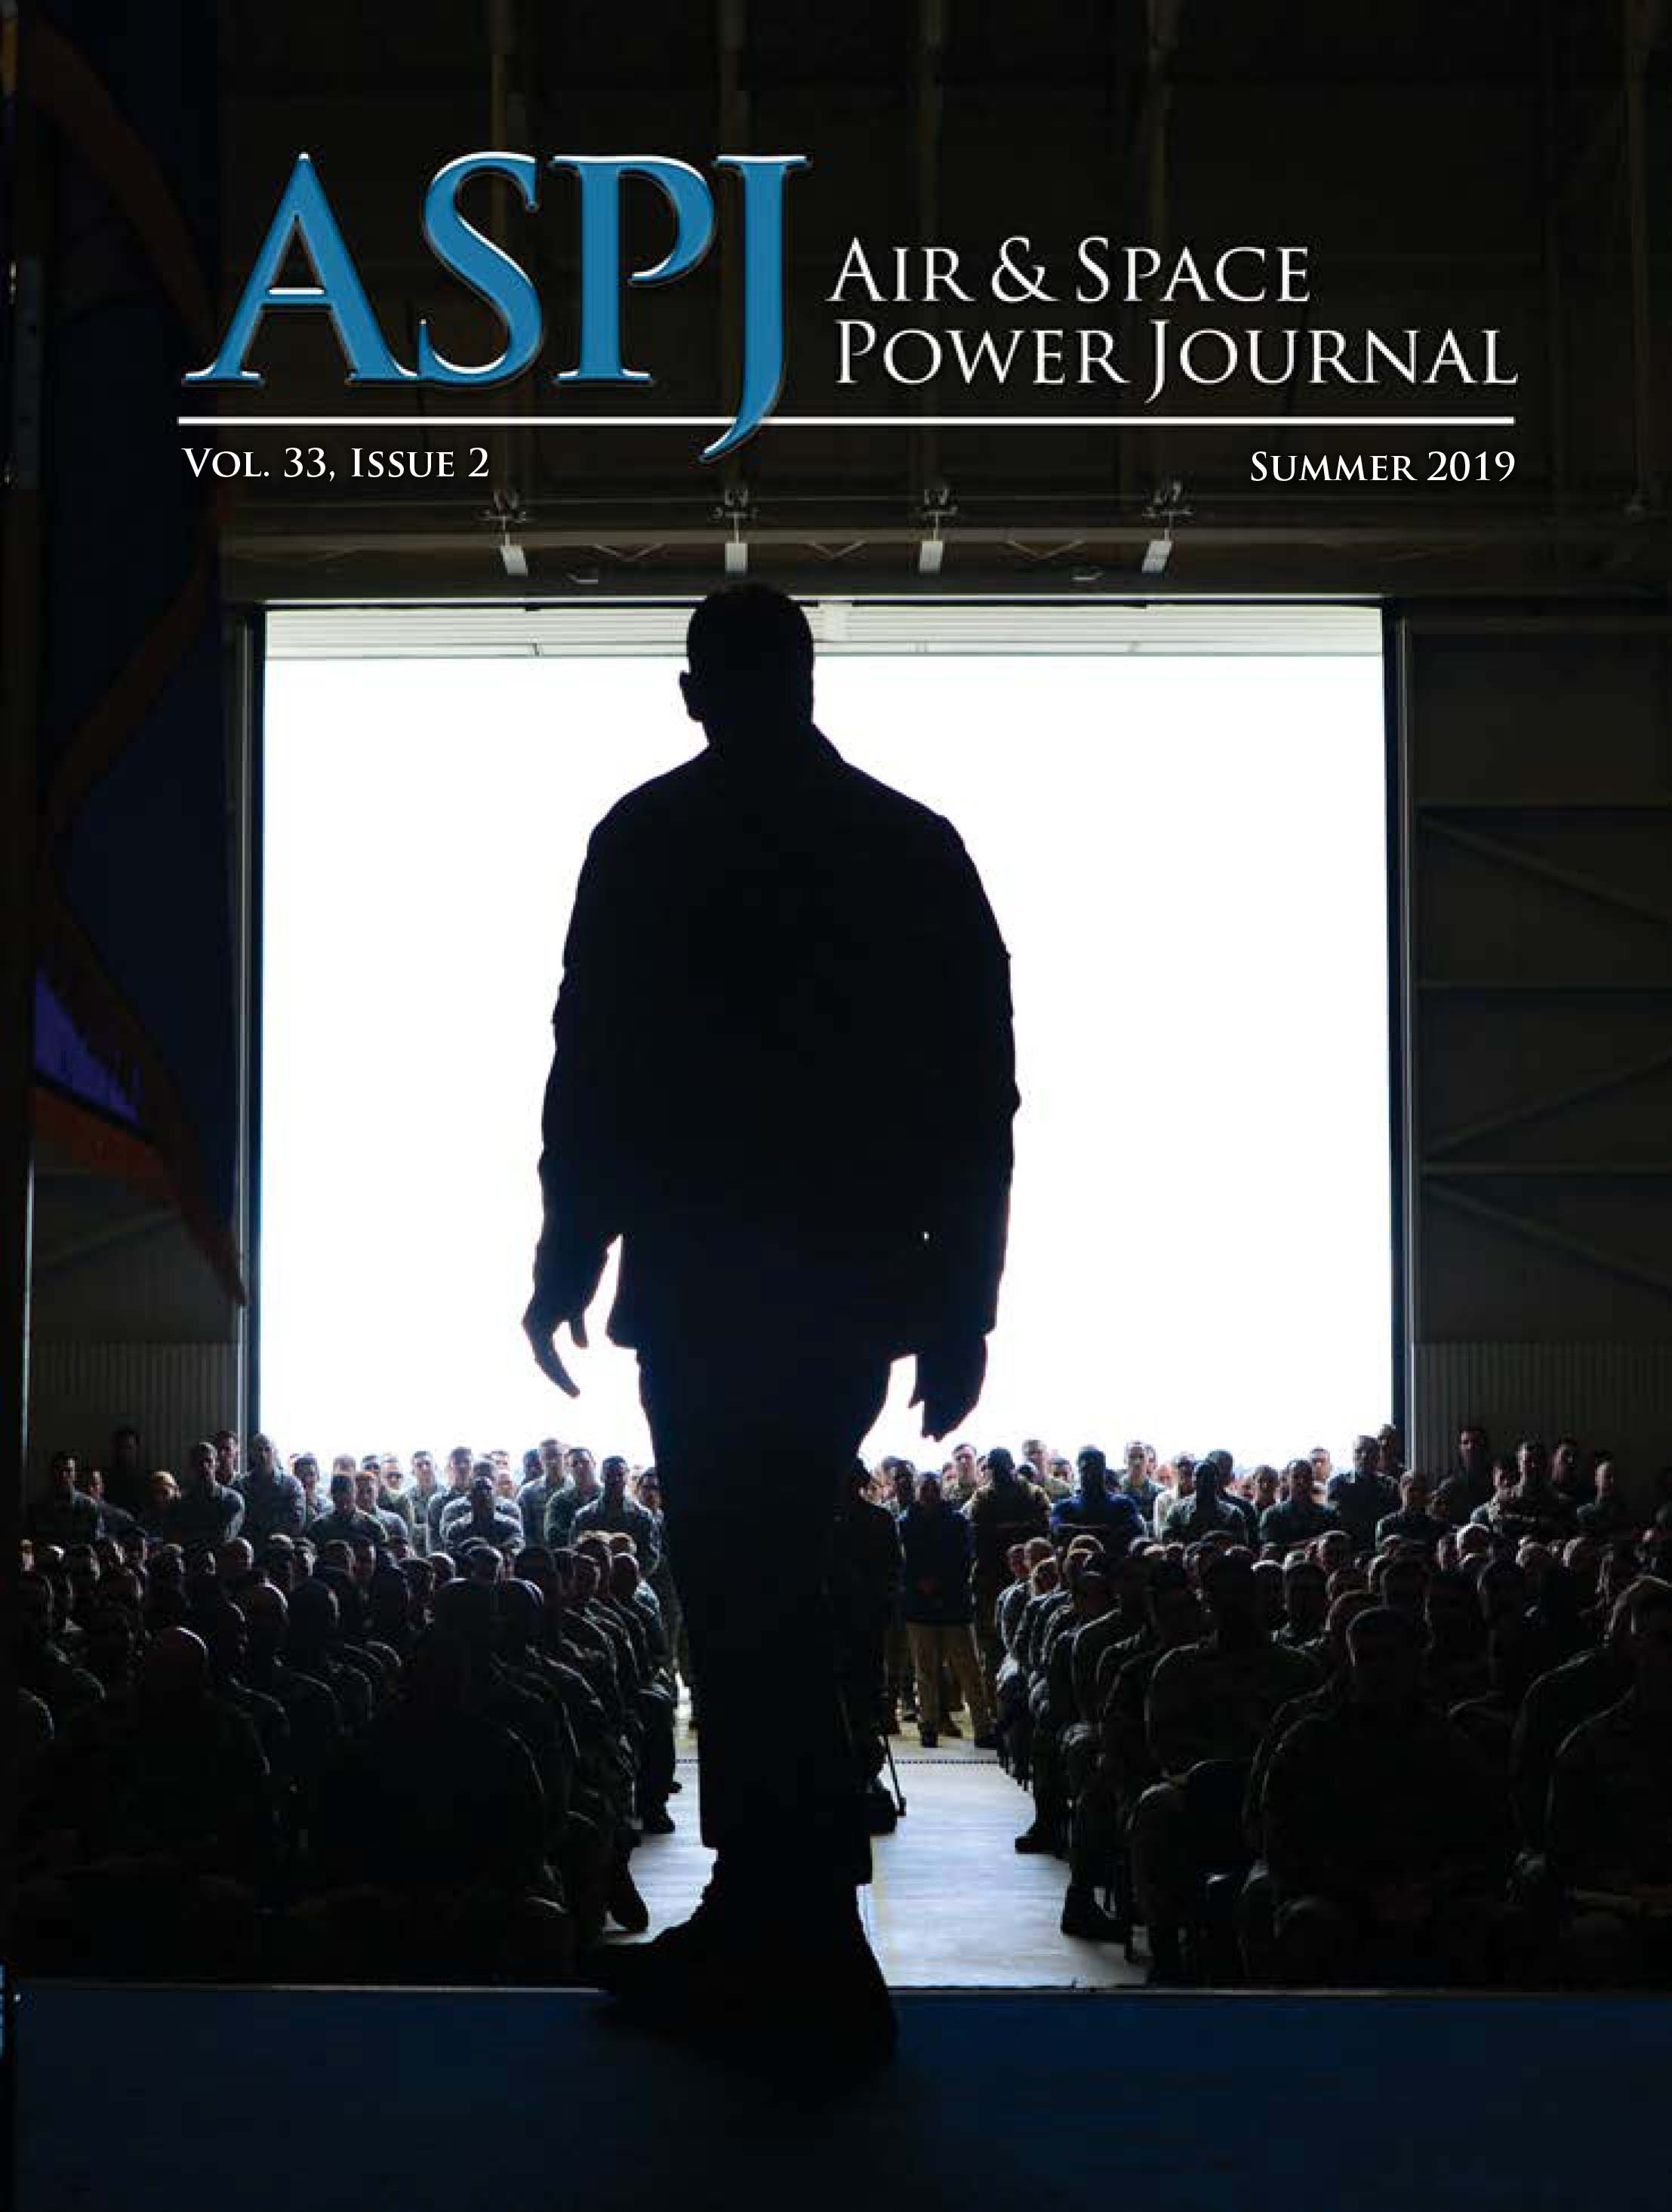 Air & Space Power Journal (ASPJ), the US Air Force's (USAF) professional peer-reviewed journal and the leading forum for airpower thought and dialogue.